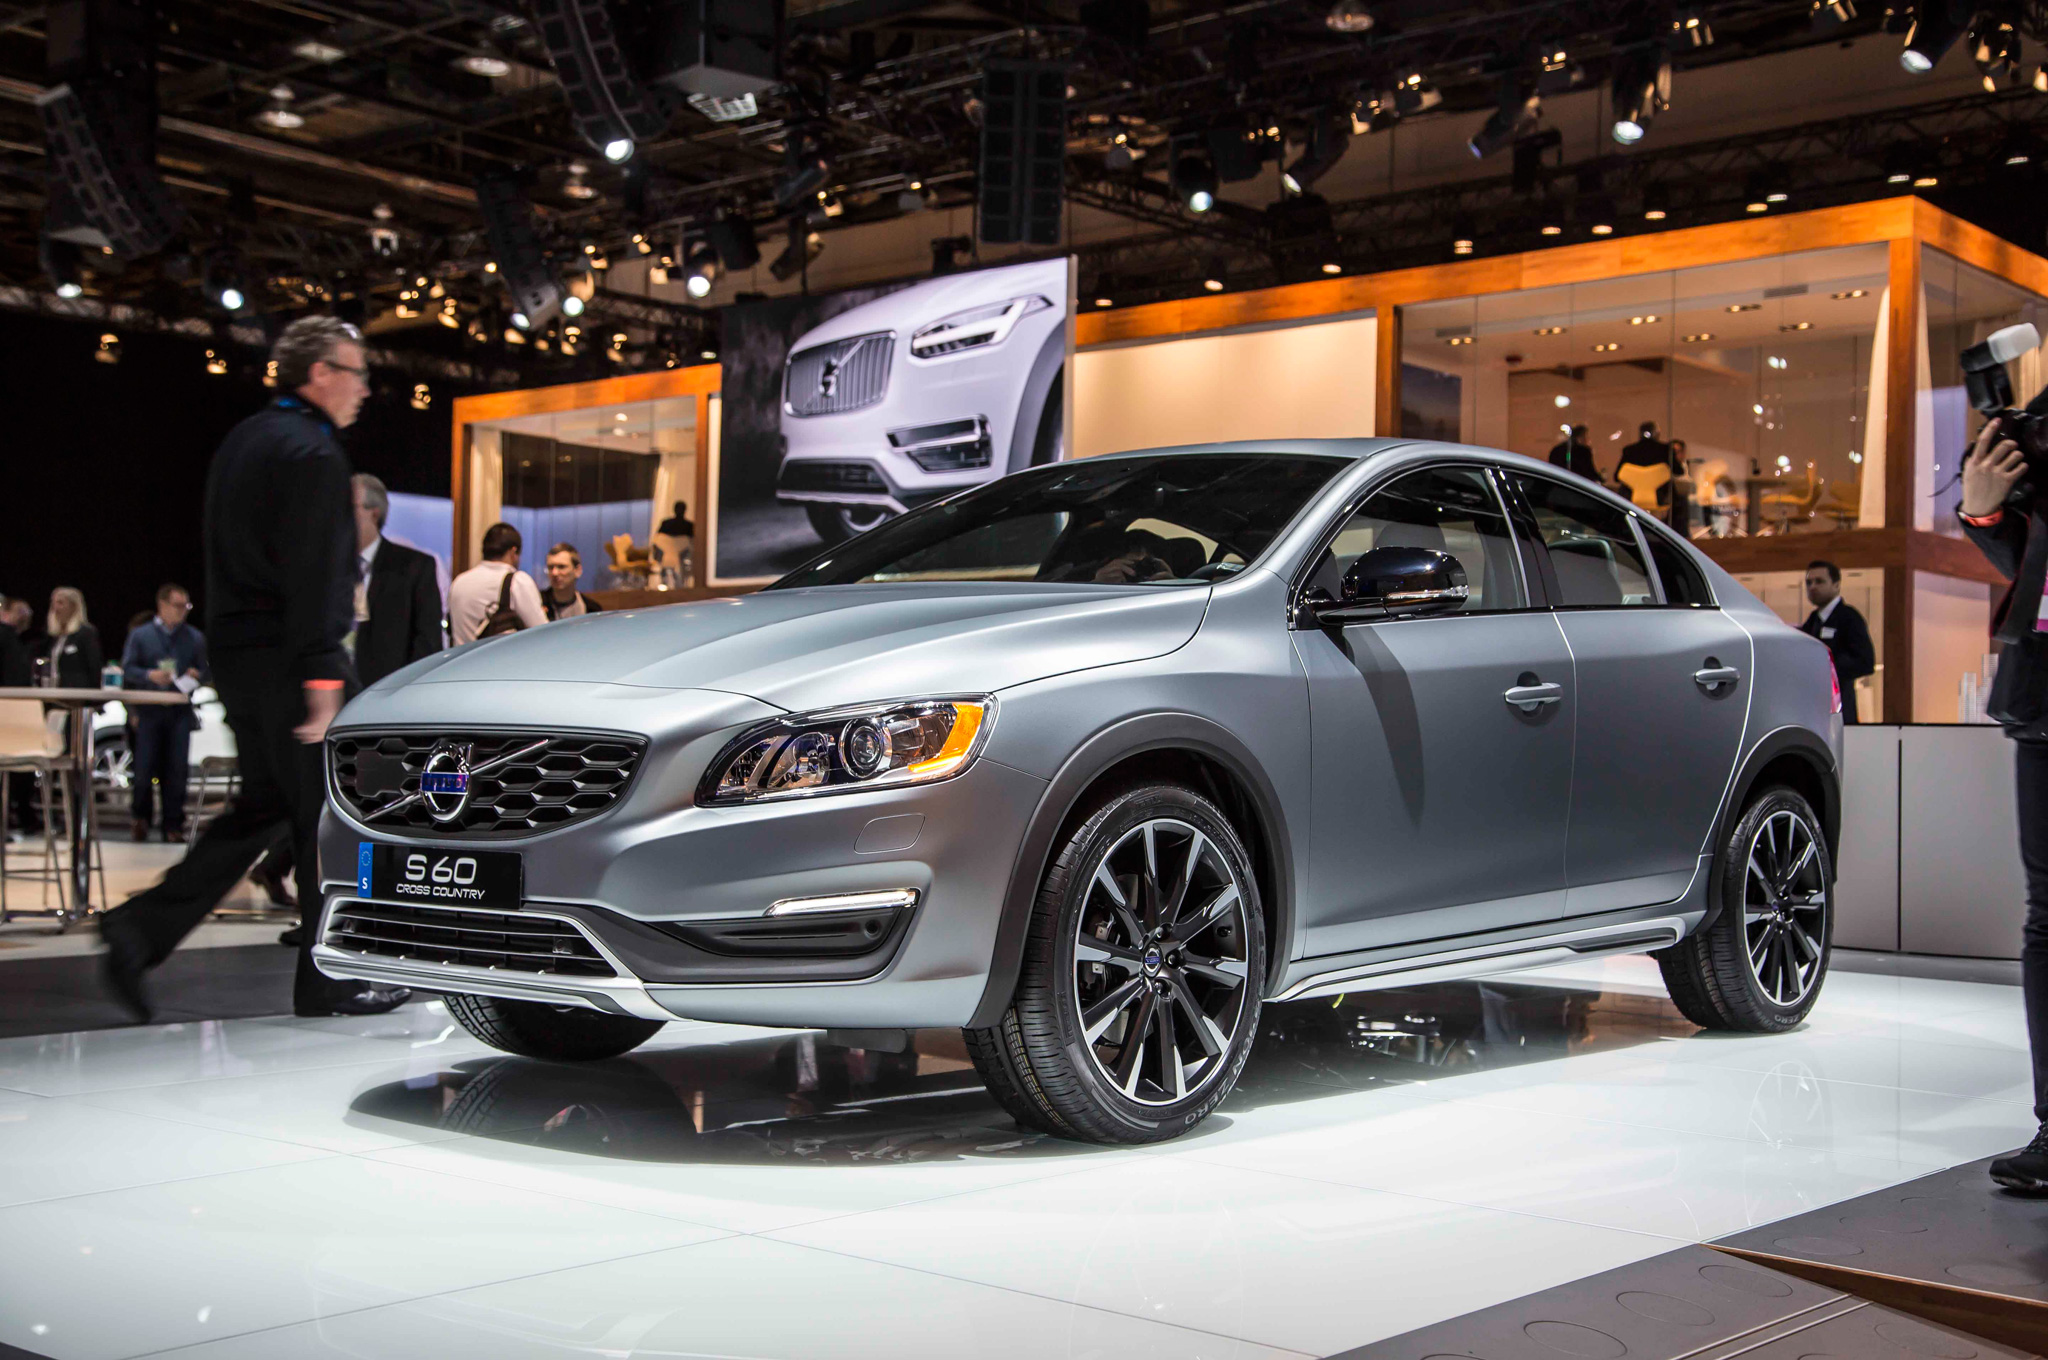 2016 Volvo S60 19 Free Car Hd Wallpaper